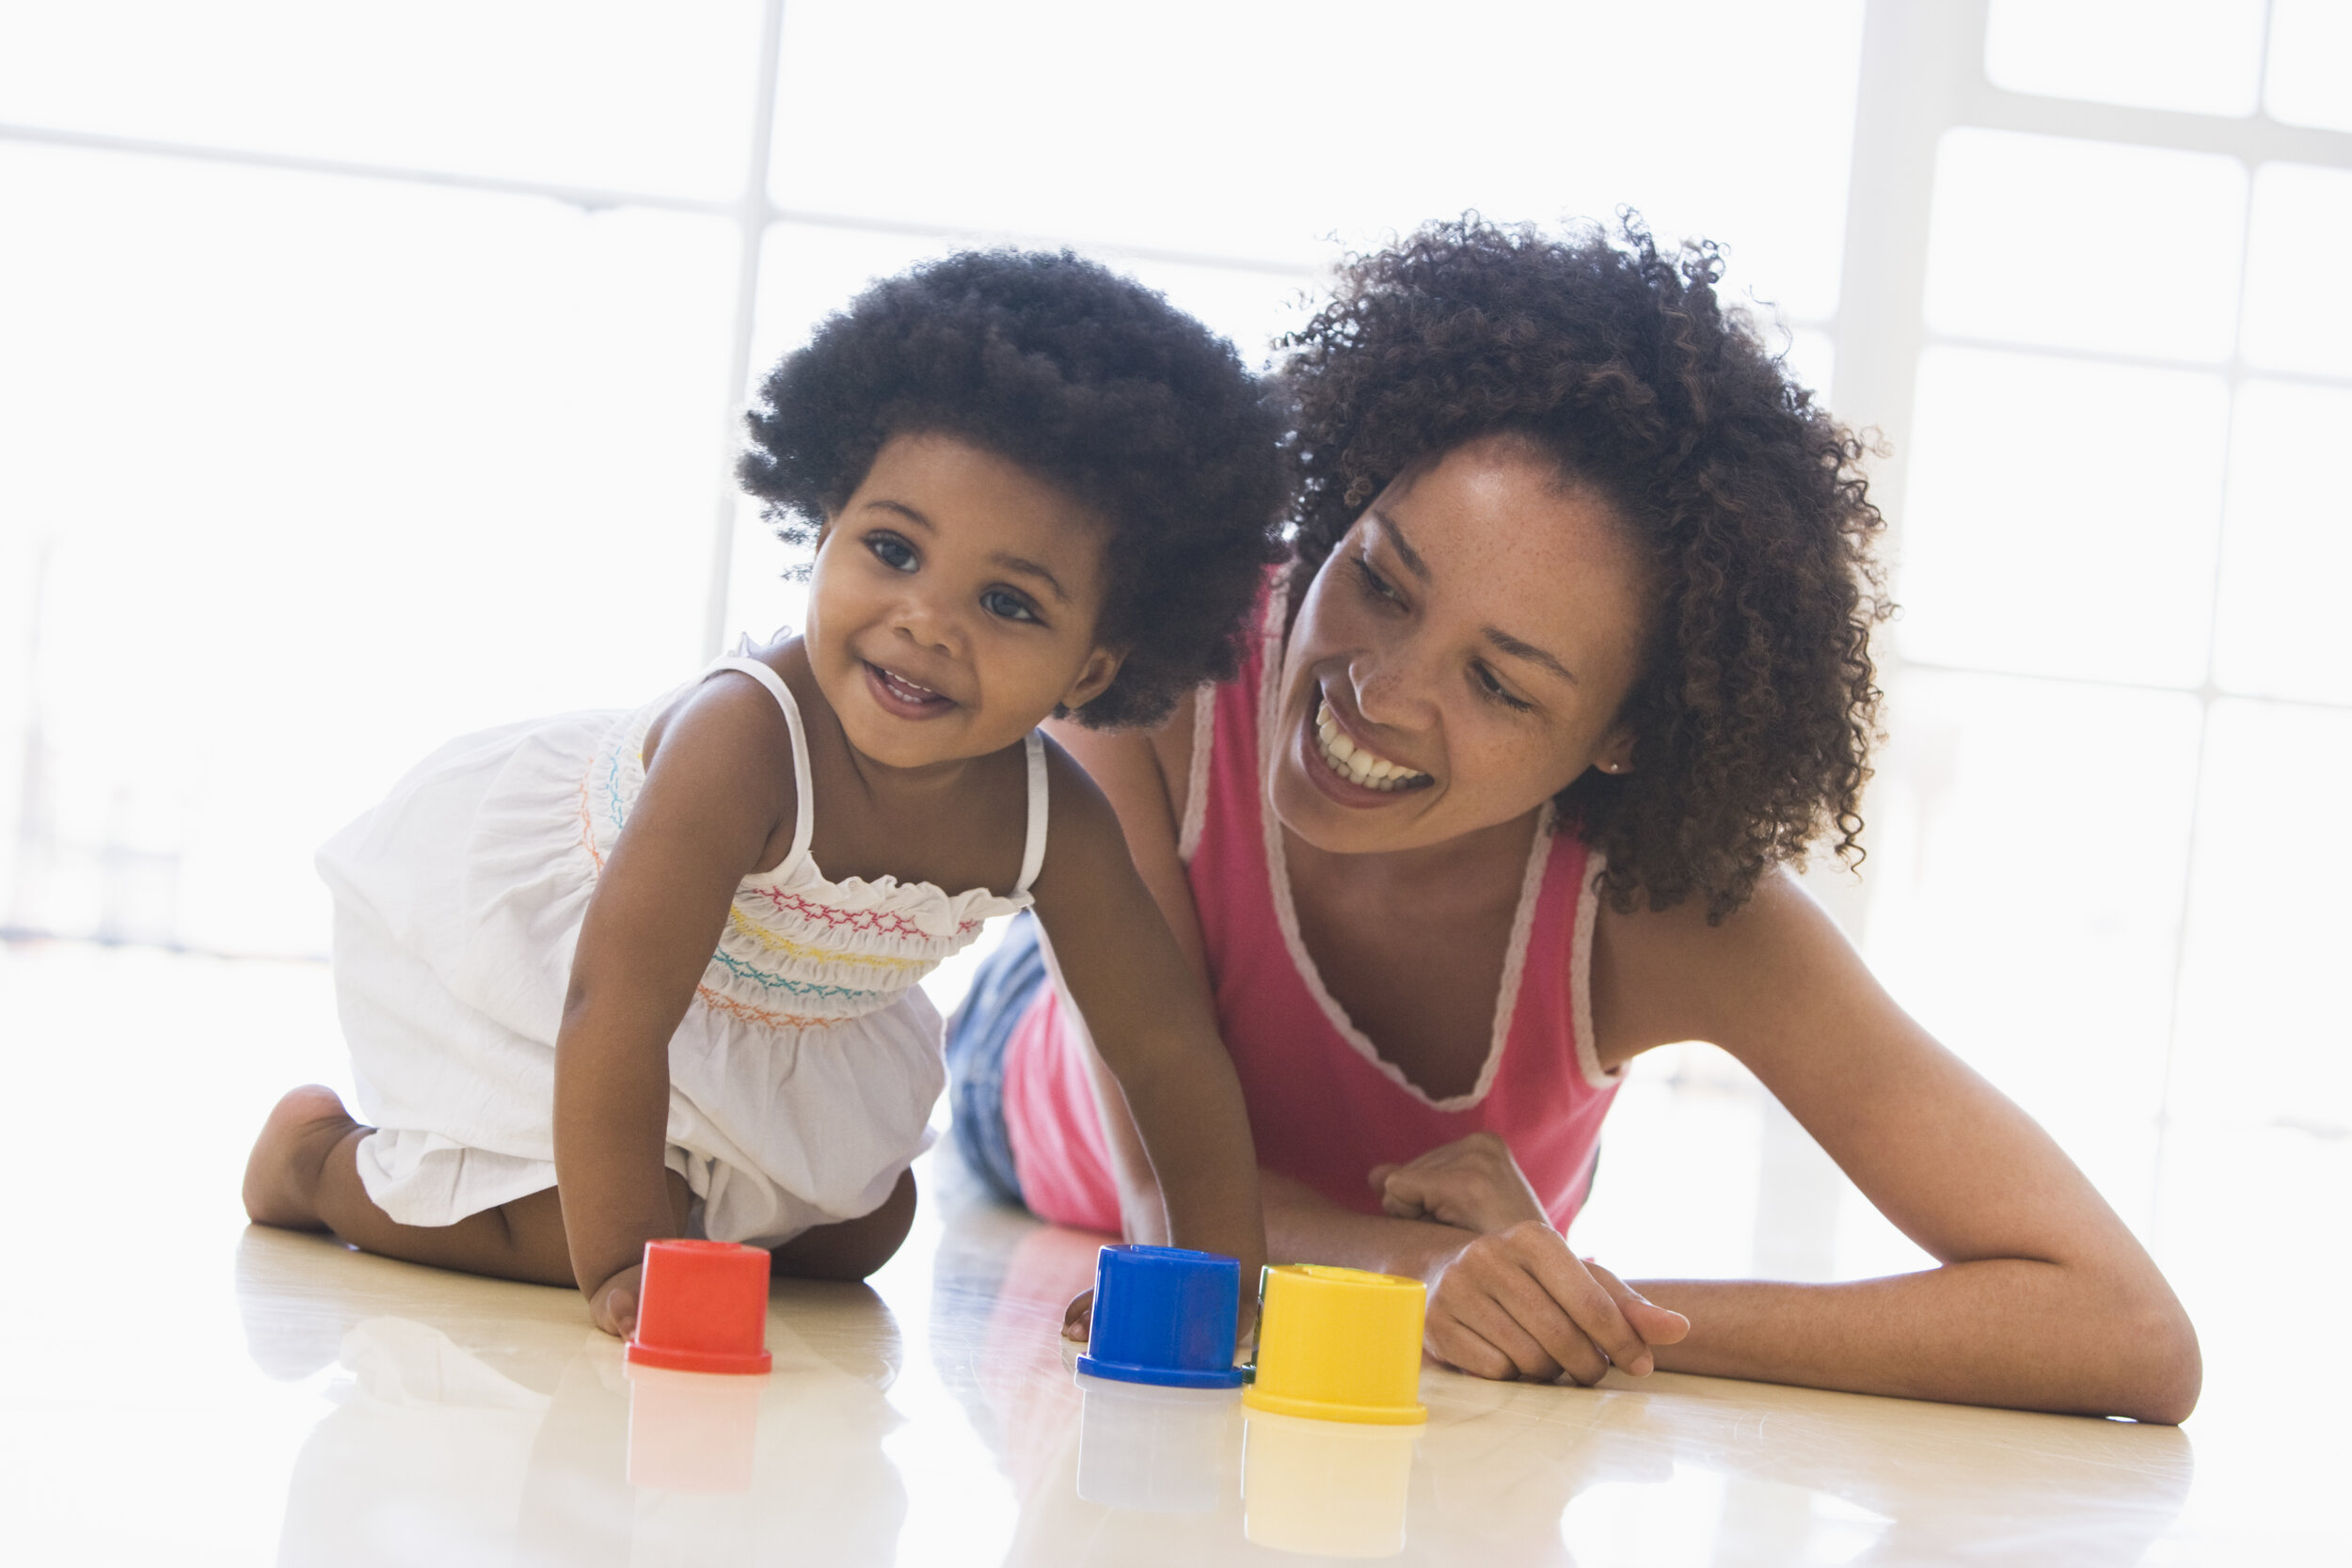 bigstock-Mother-And-Daughter-Indoors-Pl-4135835.jpg